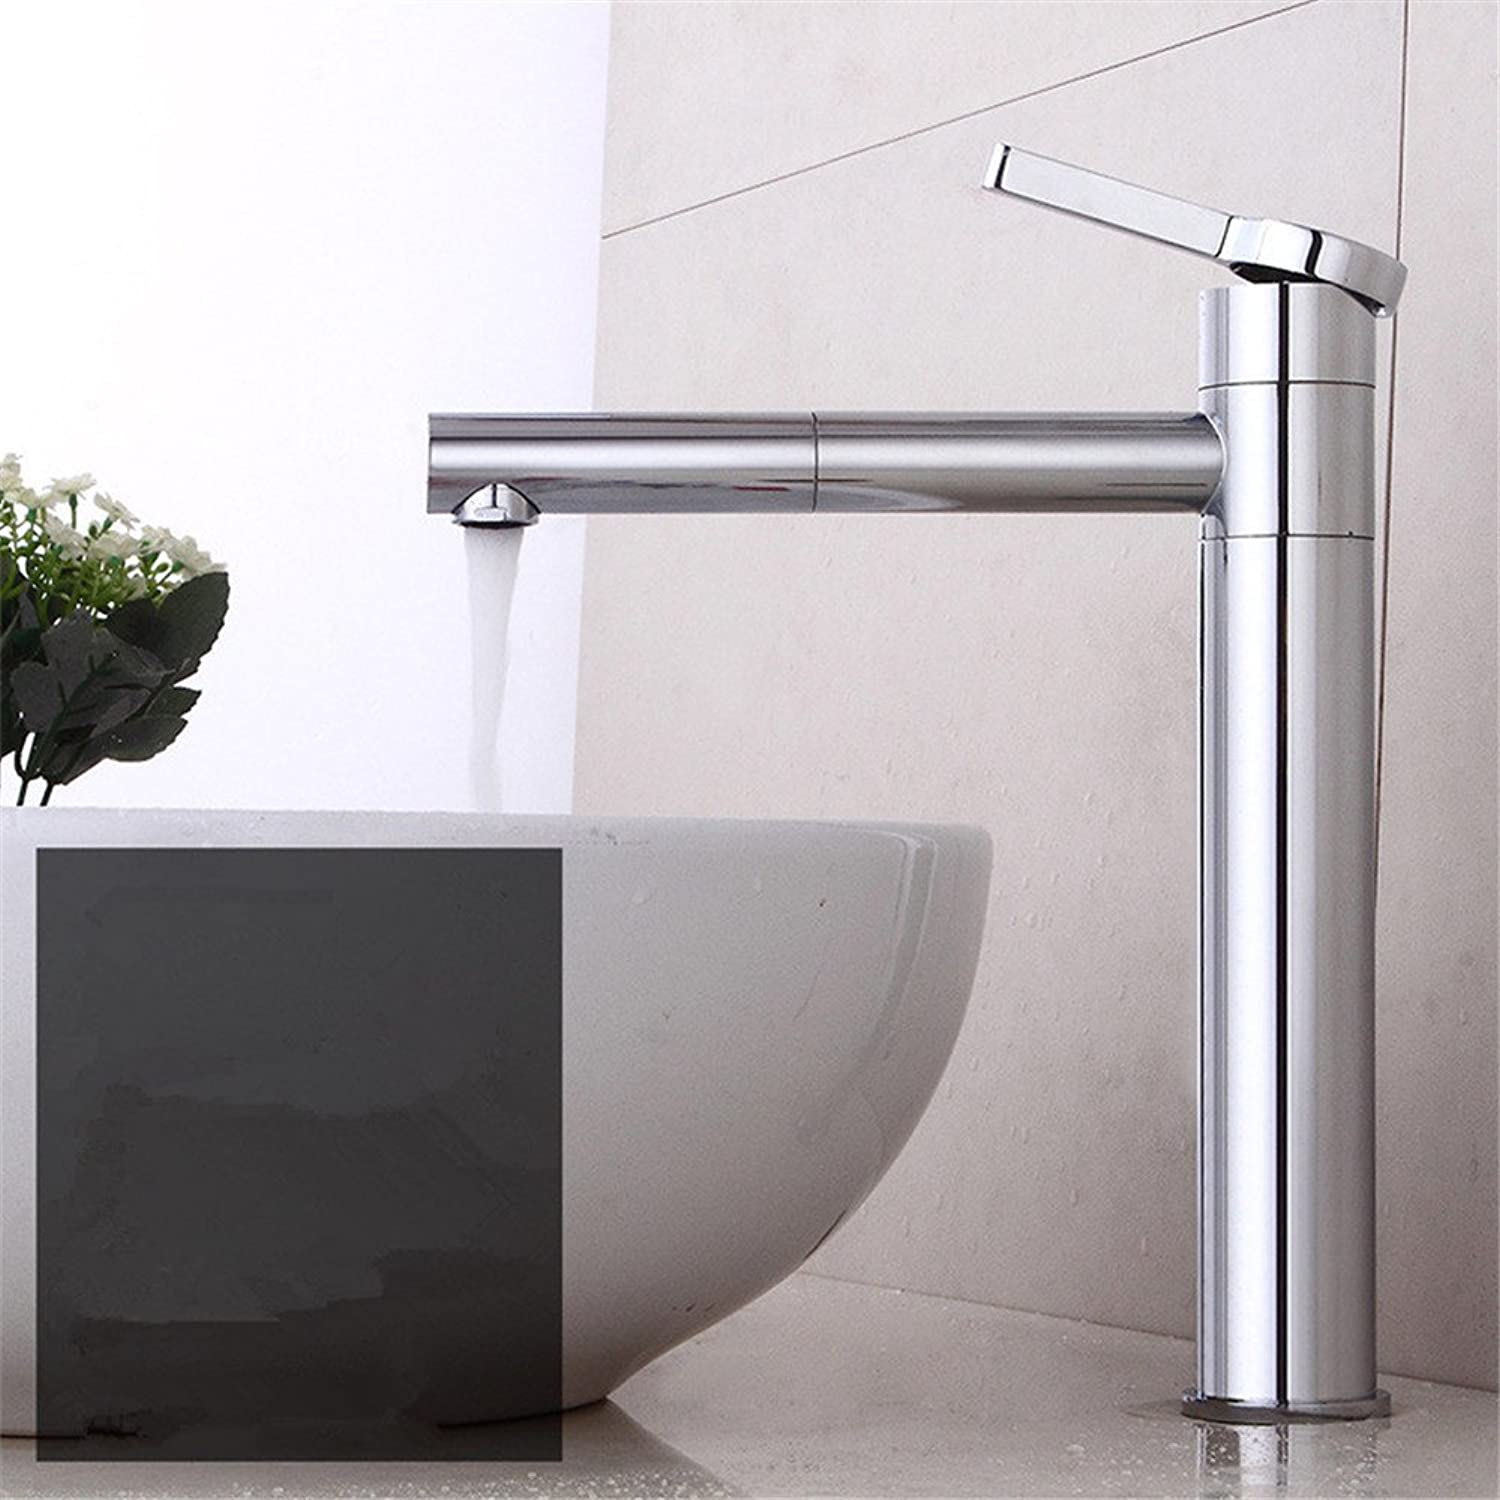 MulFaucet Faucet Water tap Taps Swivel Hoses Modern redary hot and Cold Water Ceramic Valve Single Hole Single Handle Bathroom Vanity